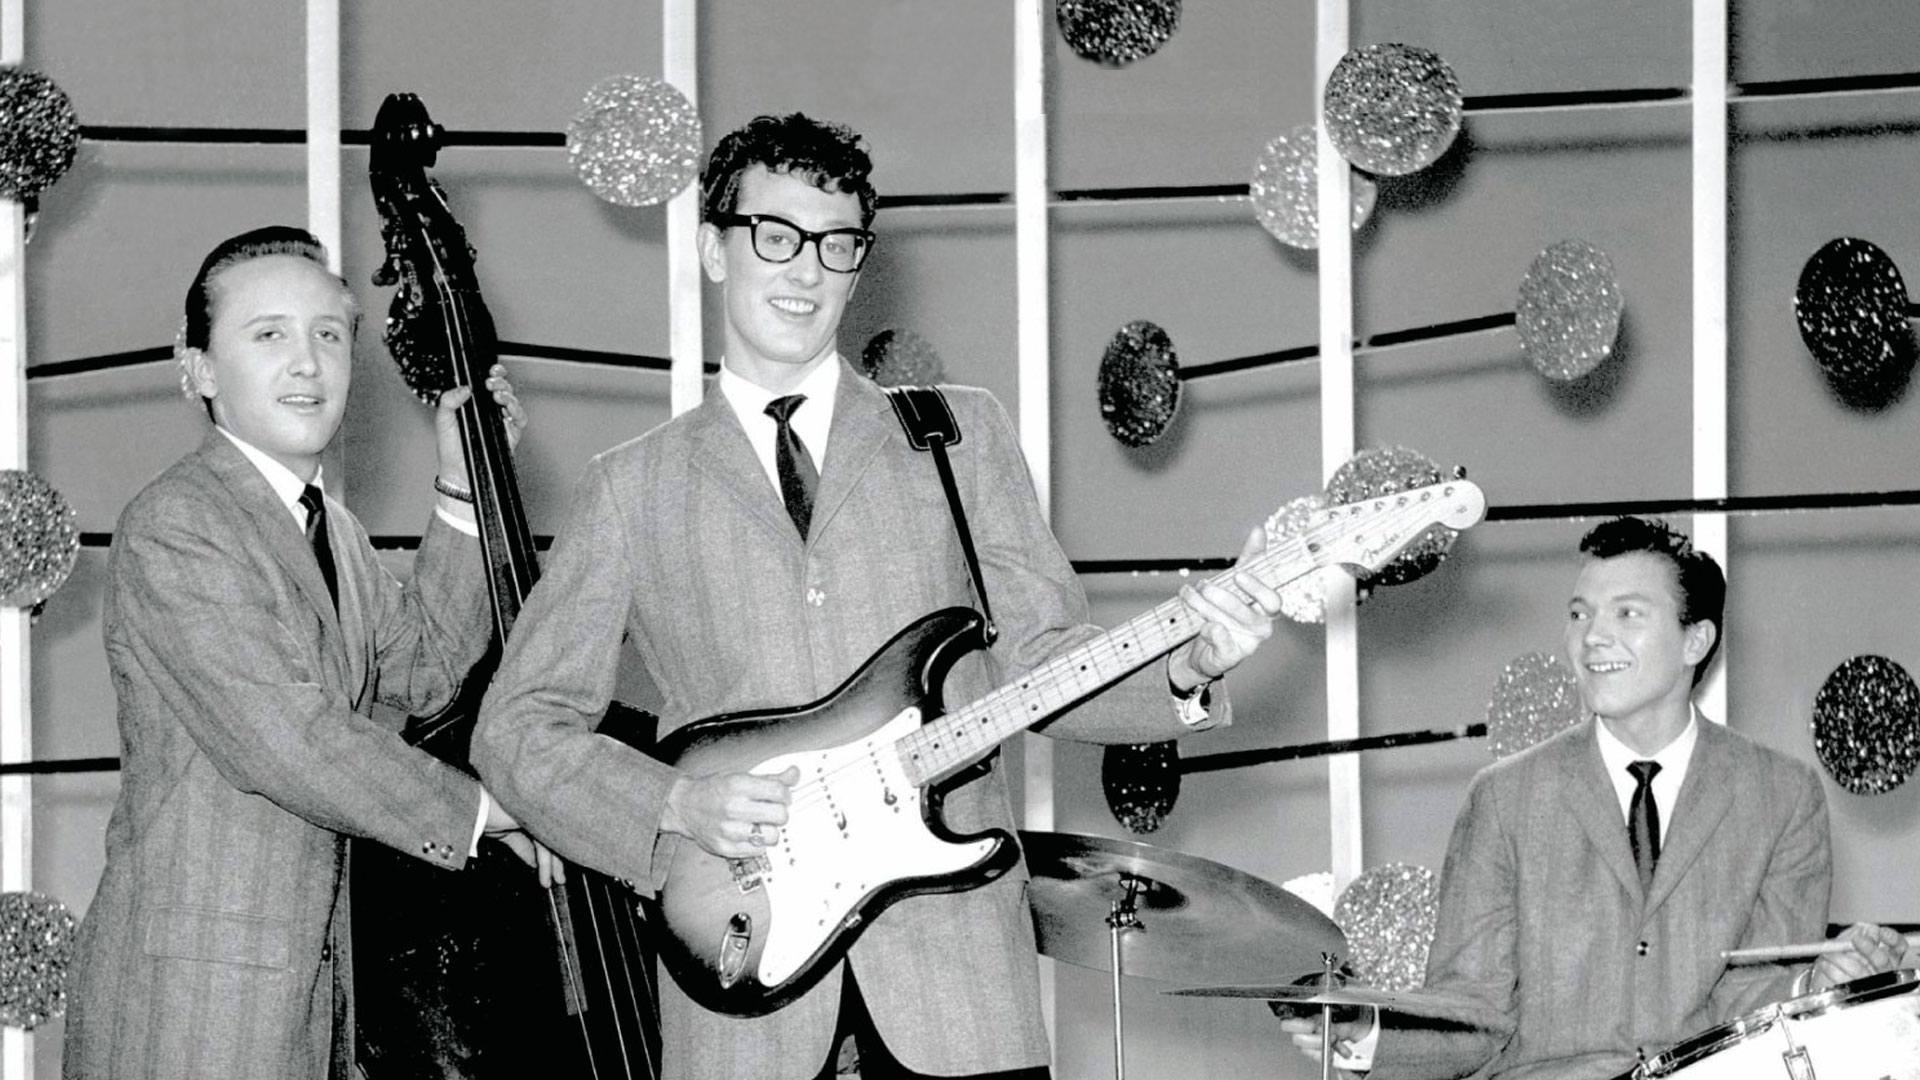 BUDDY HOLLY RAVE ON tells the story of Buddy Holly's tragically short life and career.